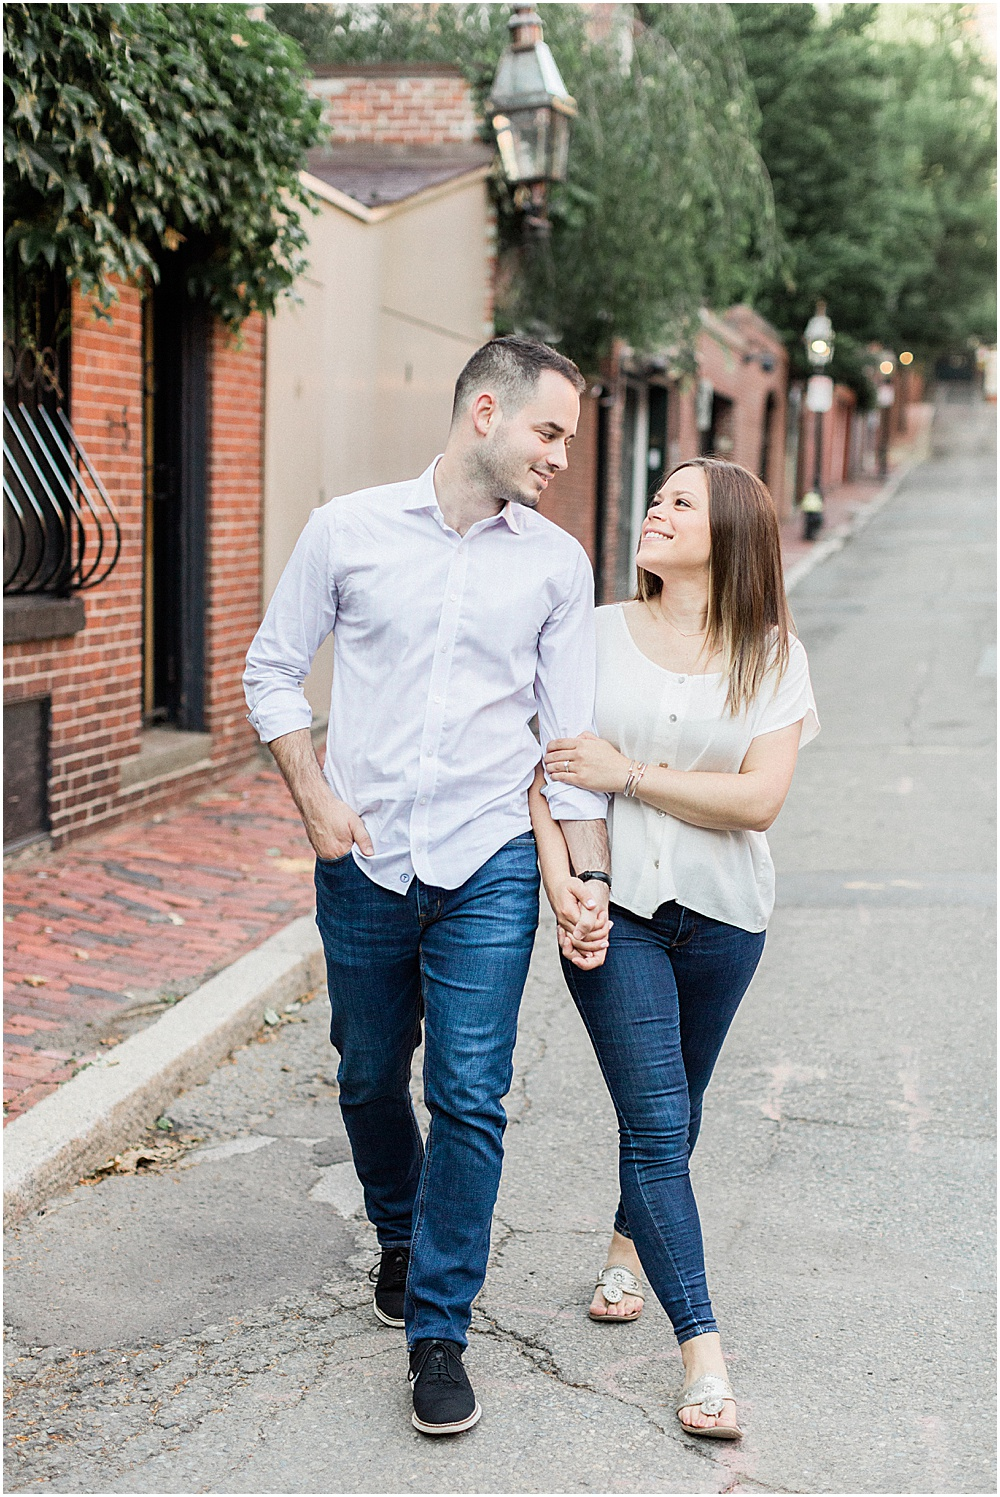 acorn_street_boston_common_garden_engagement_session_massachusetts_boston_wedding_photographer_meredith_jane_photography_photo_0449.jpg